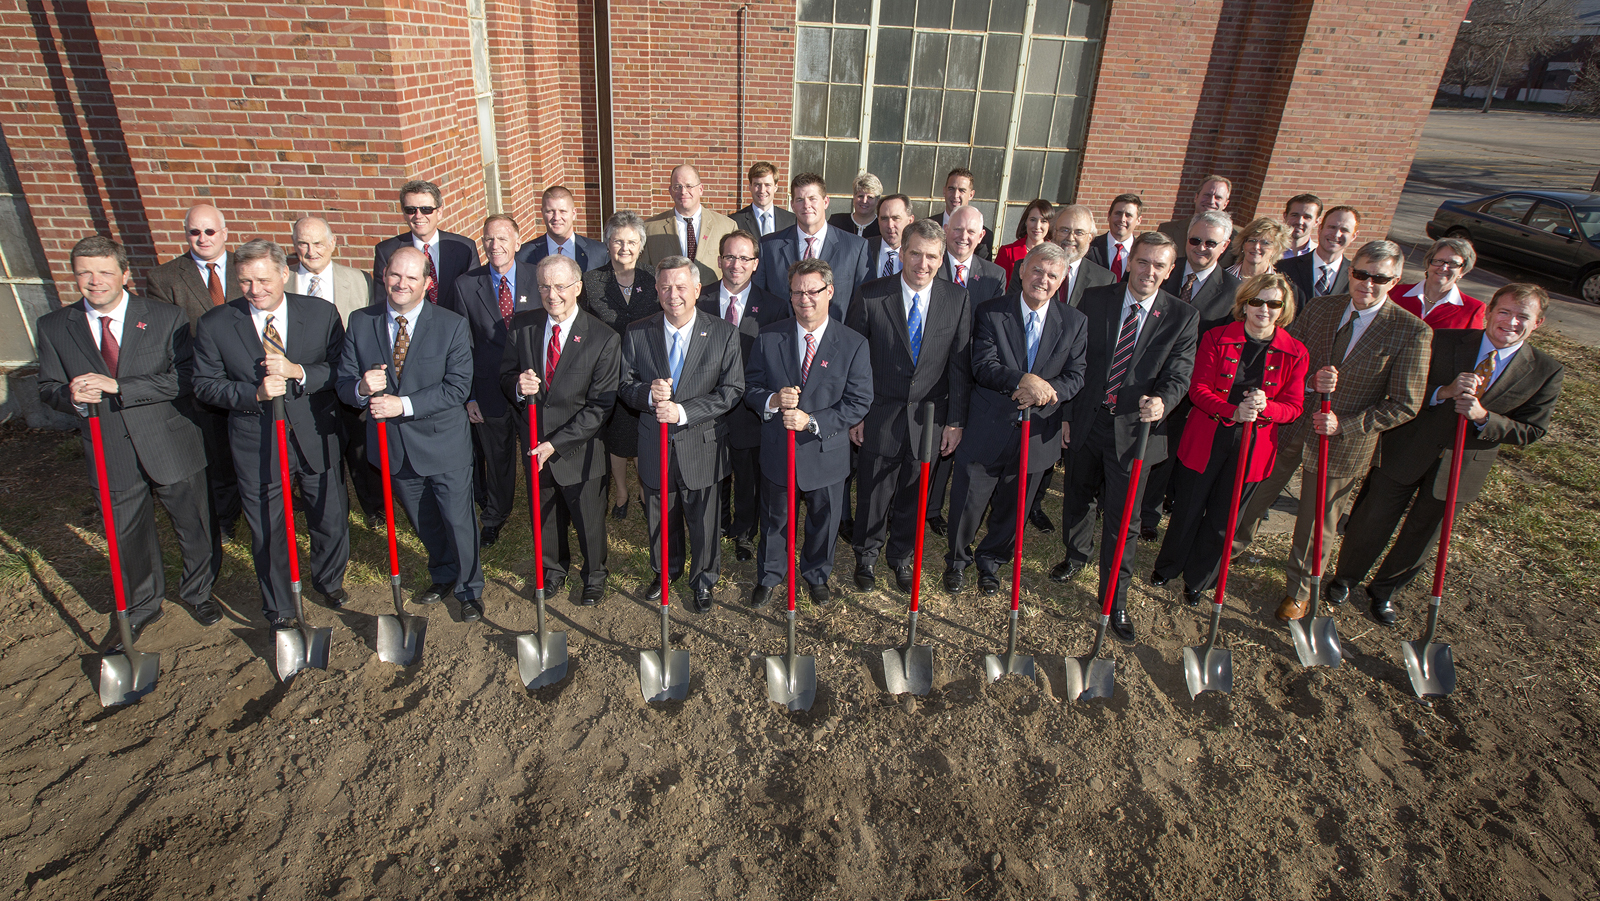 A ceremonial Nebraska Innovation Campus groundbreaking was part of the Nov. 16 announcement on the expanded collaboration between UNL and ConAgra Foods.